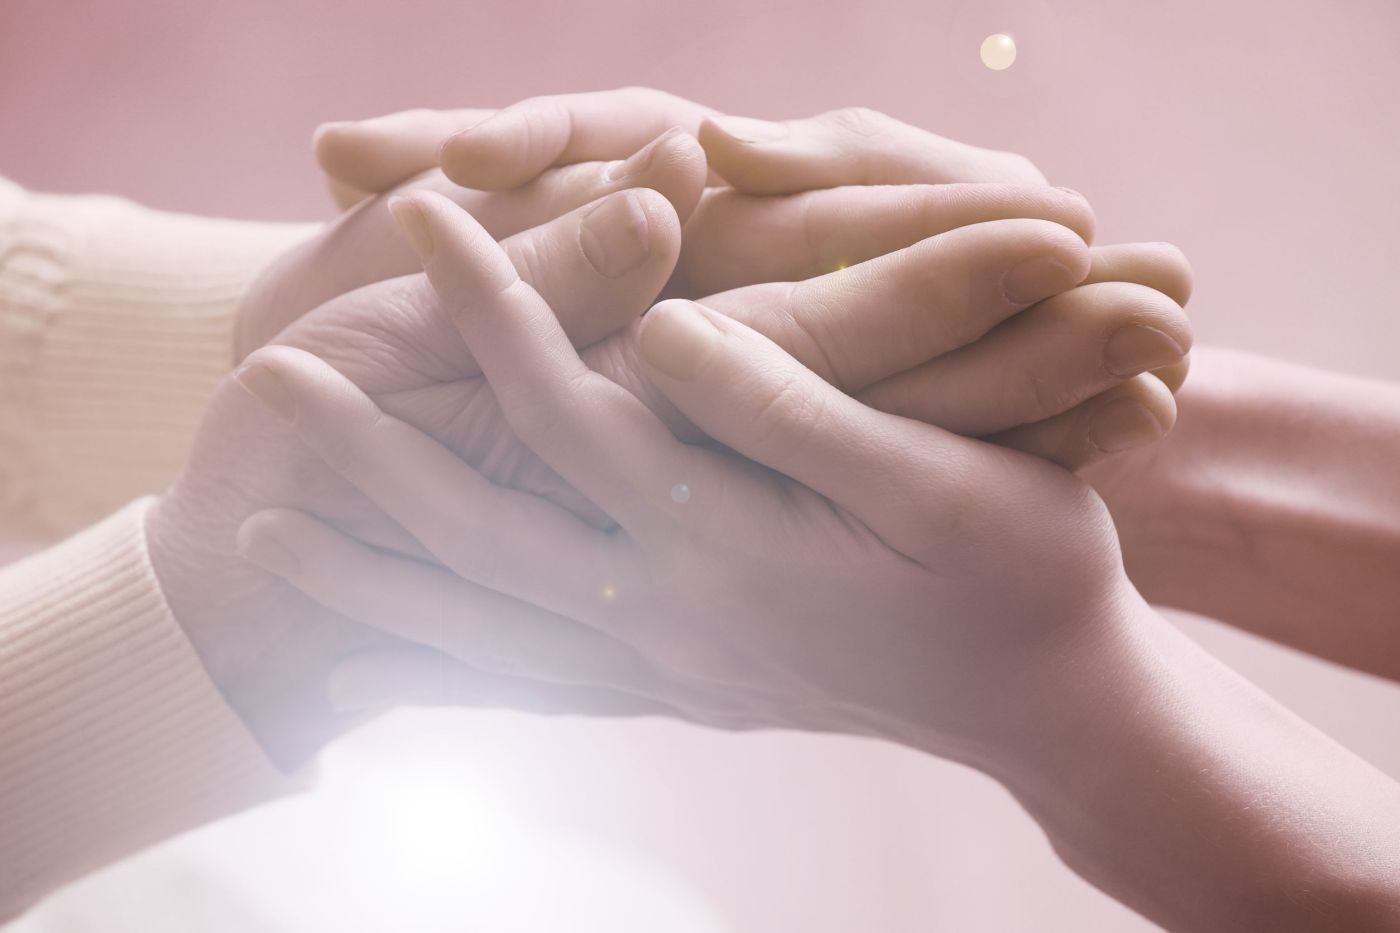 36276846 - old and young holding hands on light background, closeup